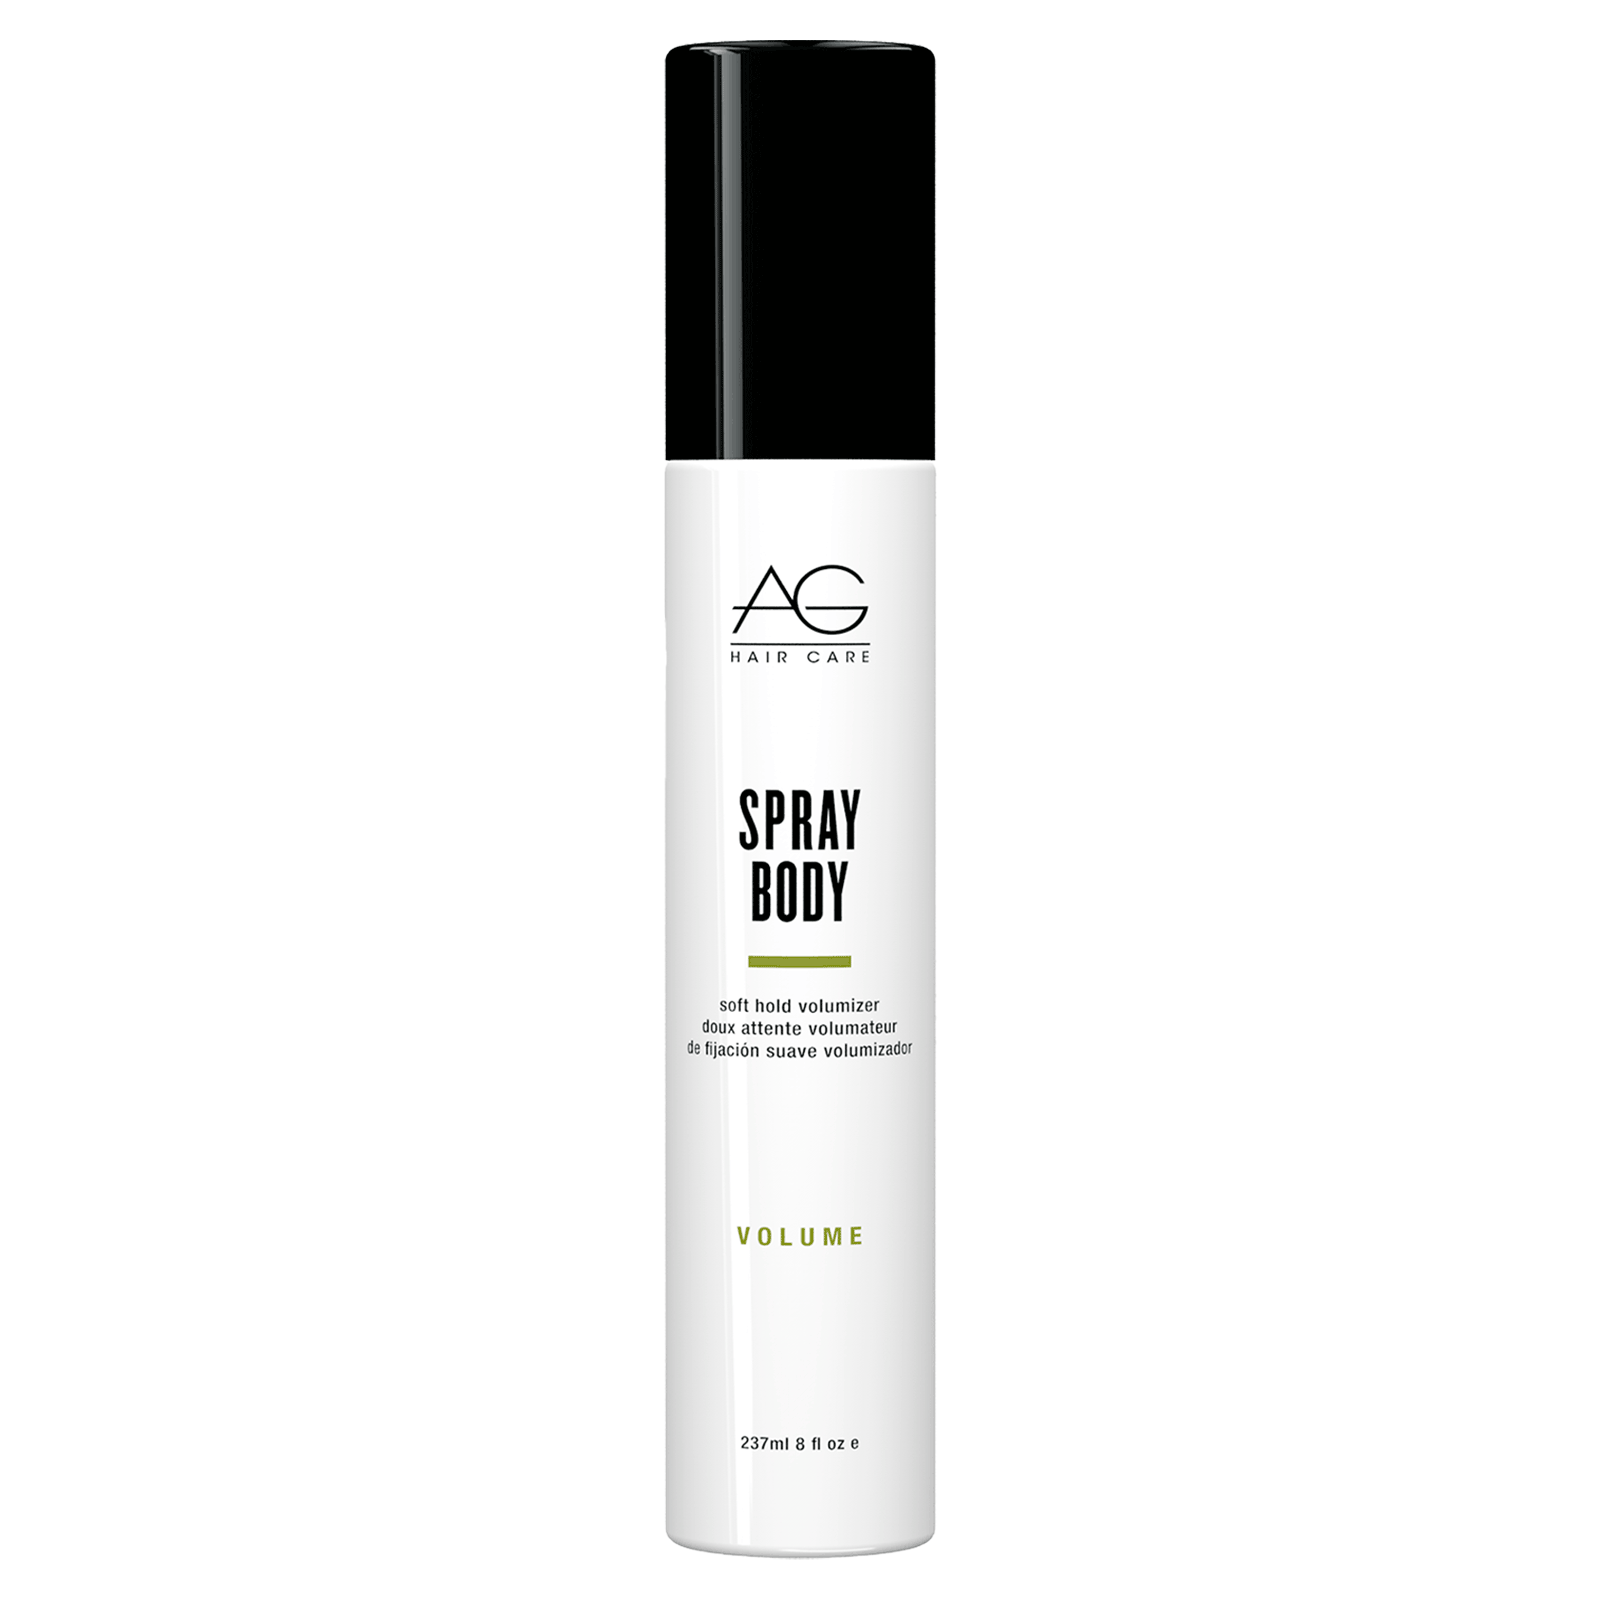 Spray Body - Soft Hold Volumizer